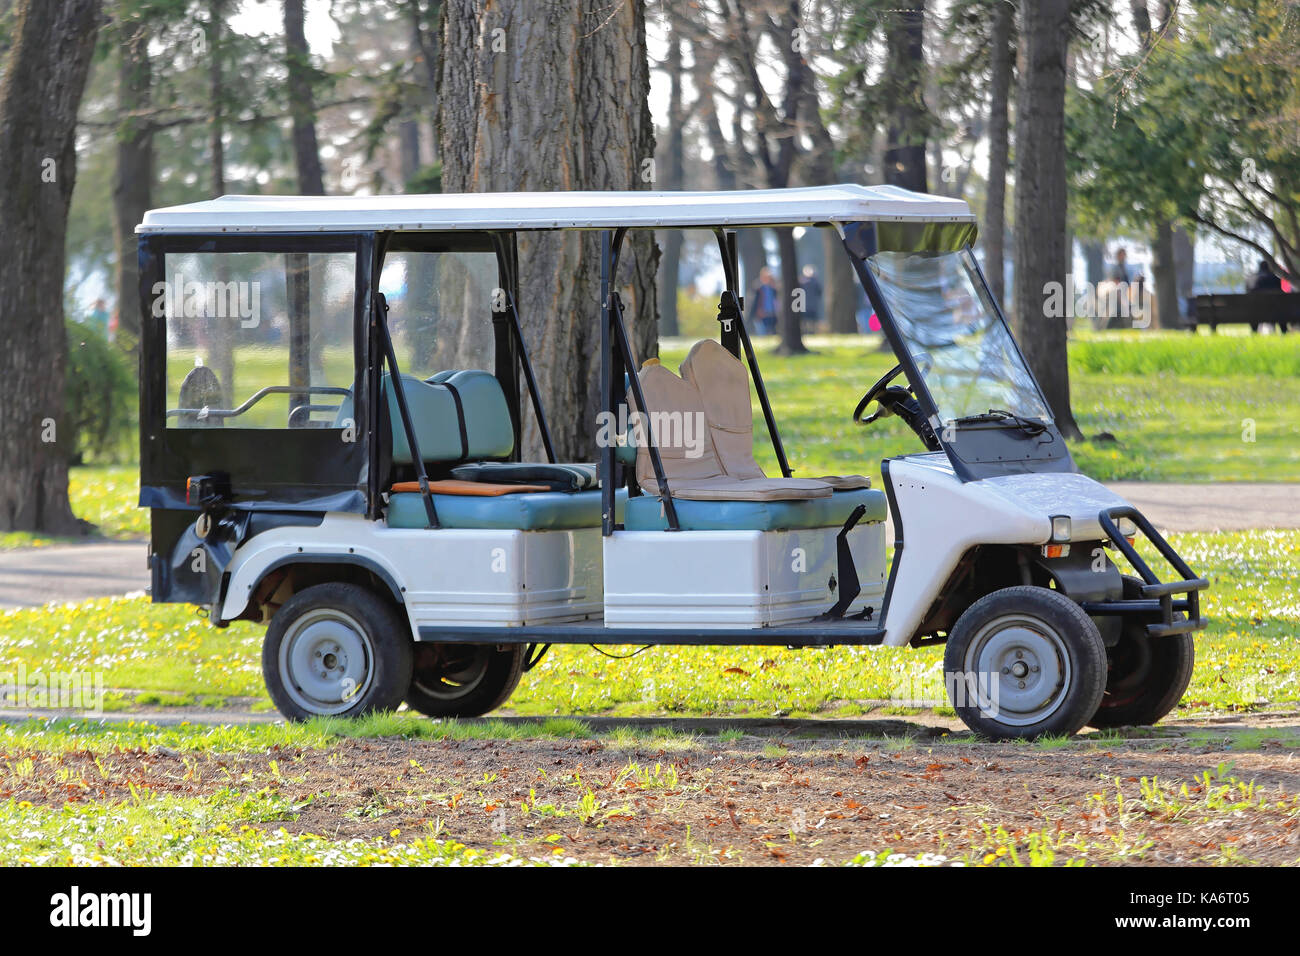 Big Electric Golf Cart in Park - Stock Image